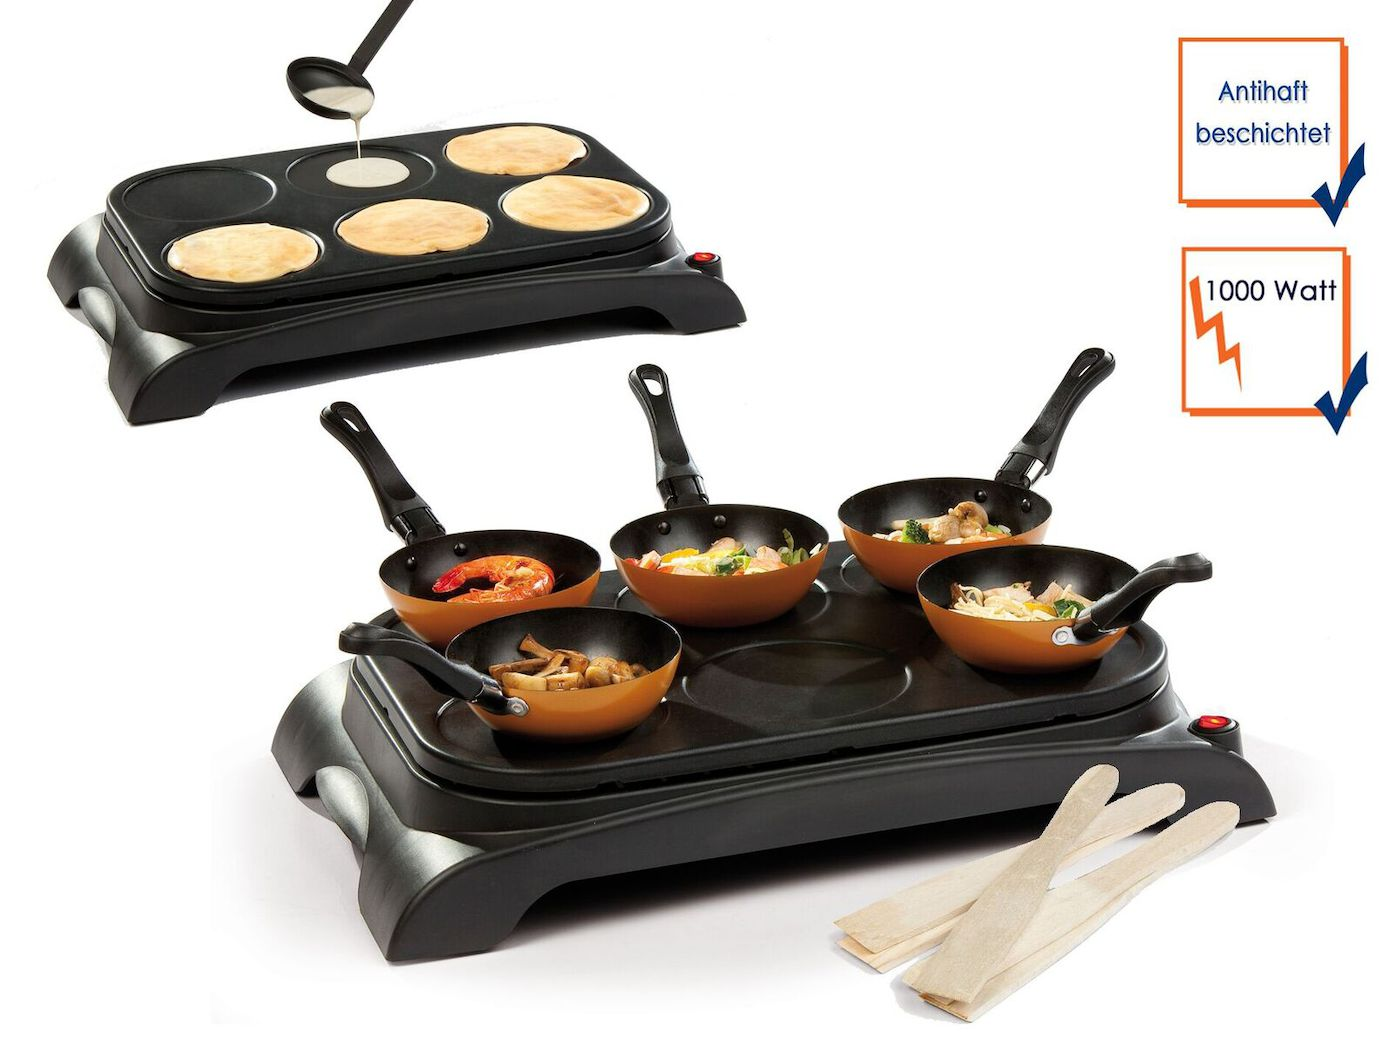 party wok set mit 6 pf nnchen pfannkuchen maker und holzspatel crepe wock ebay. Black Bedroom Furniture Sets. Home Design Ideas